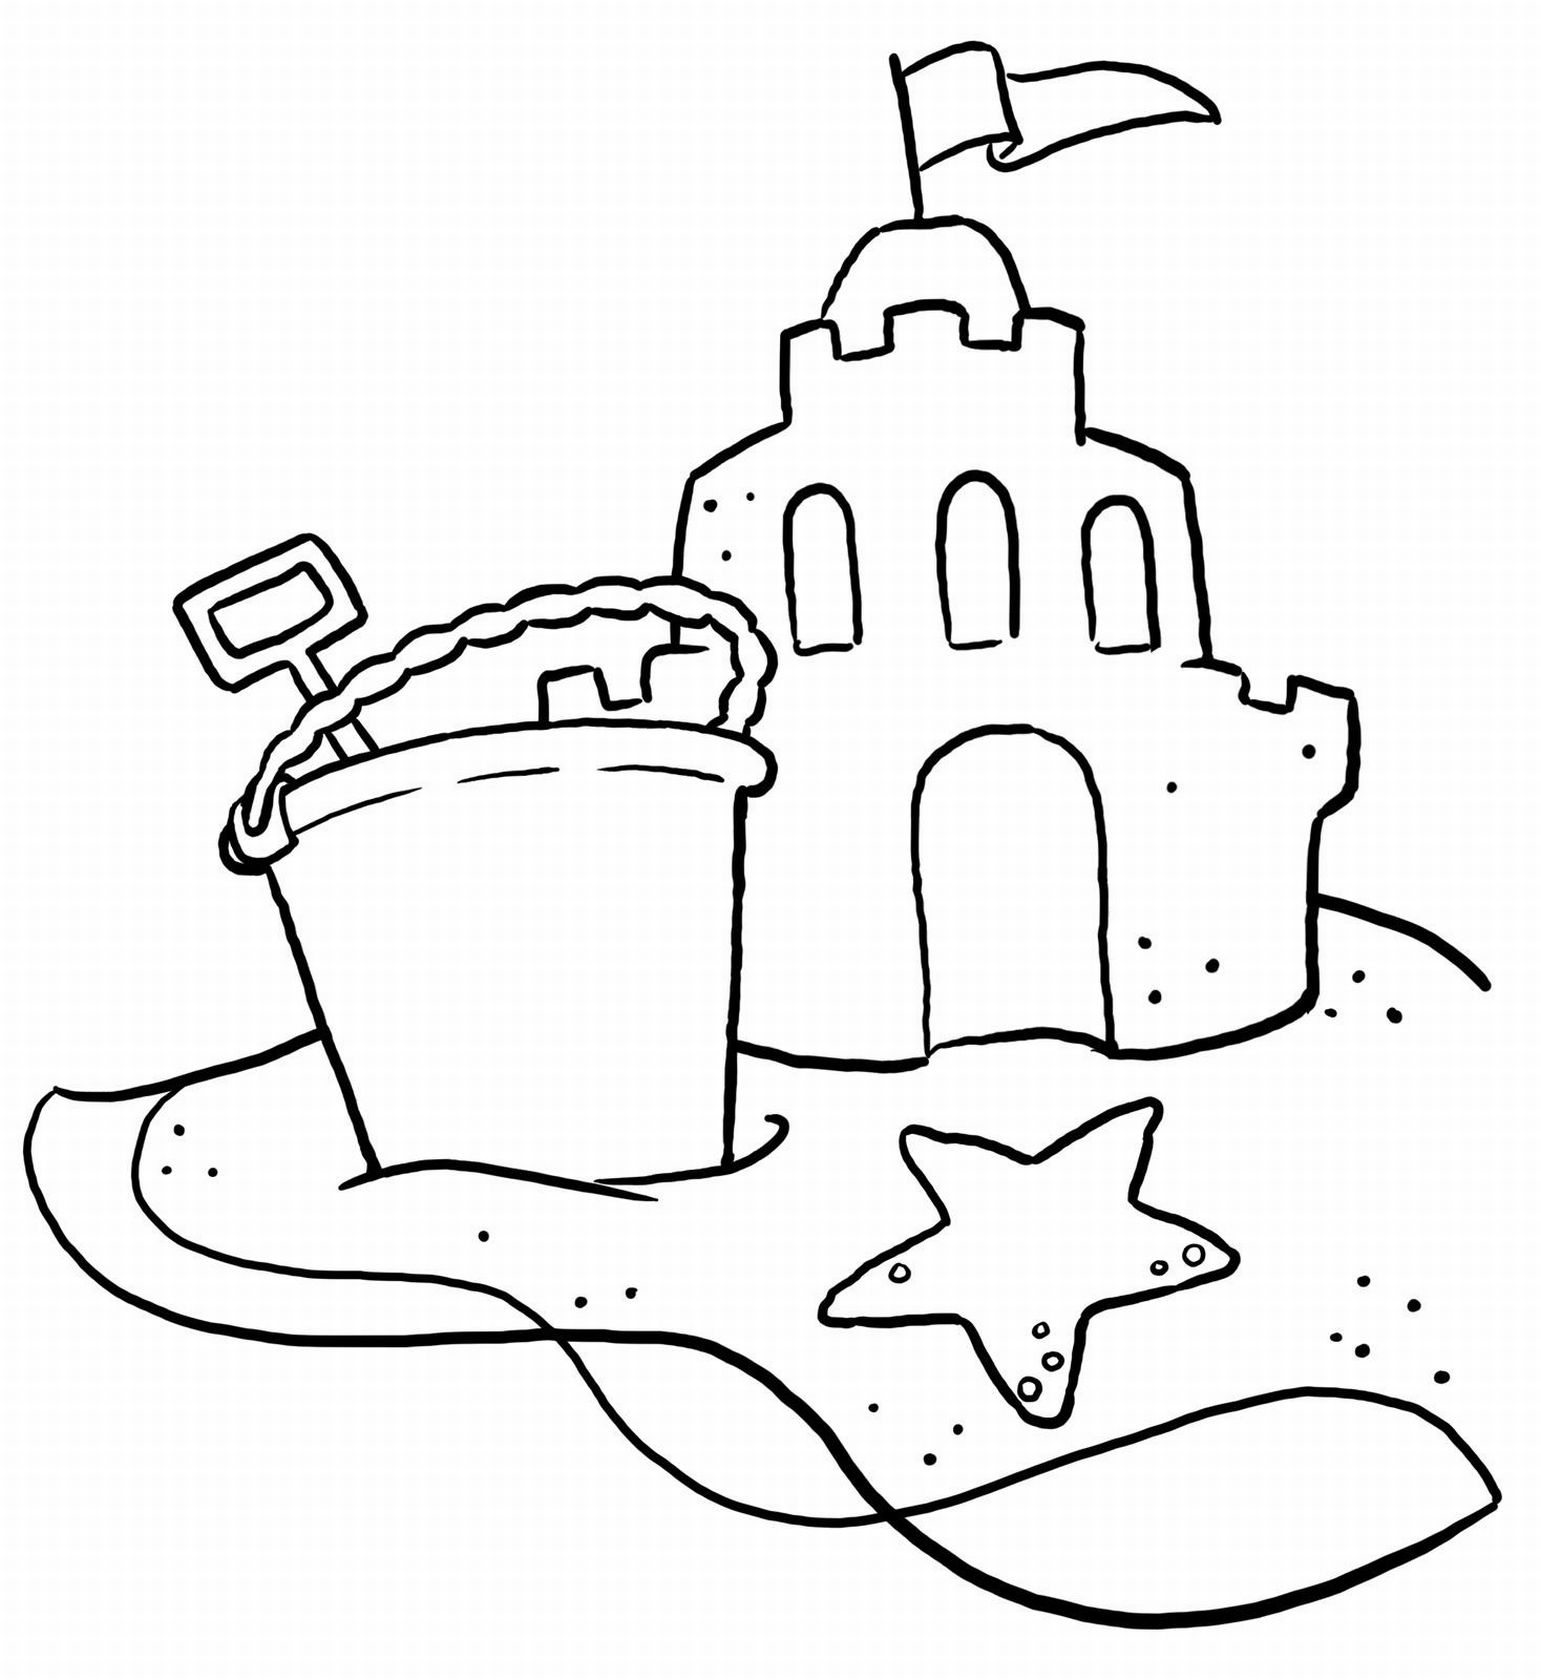 Sand Castle Coloring Pages To Print At Getdrawings Com